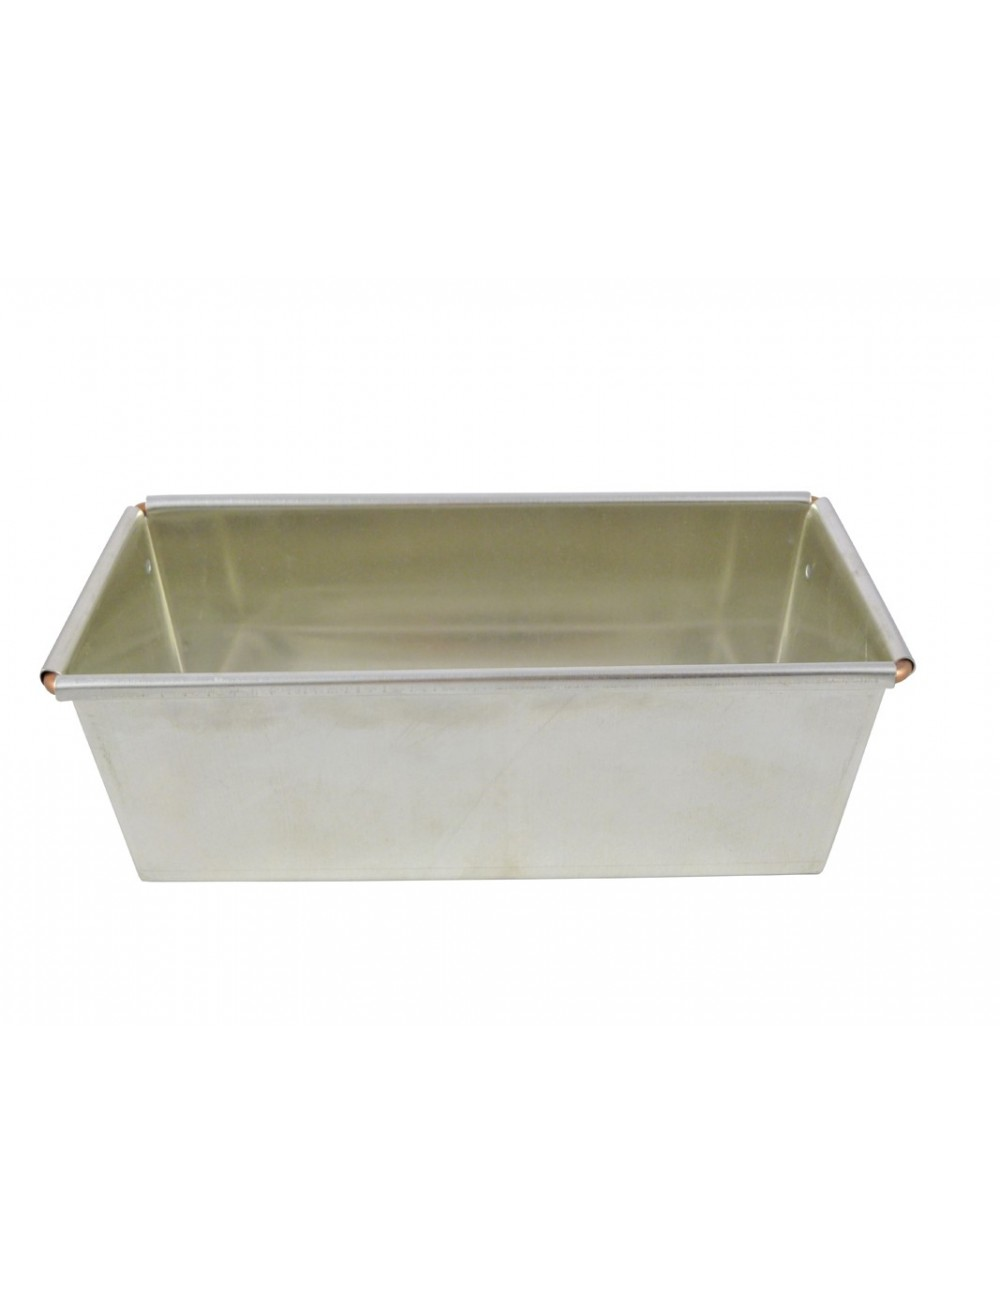 STRAIGHT CAKE MOULD - TINPLATE